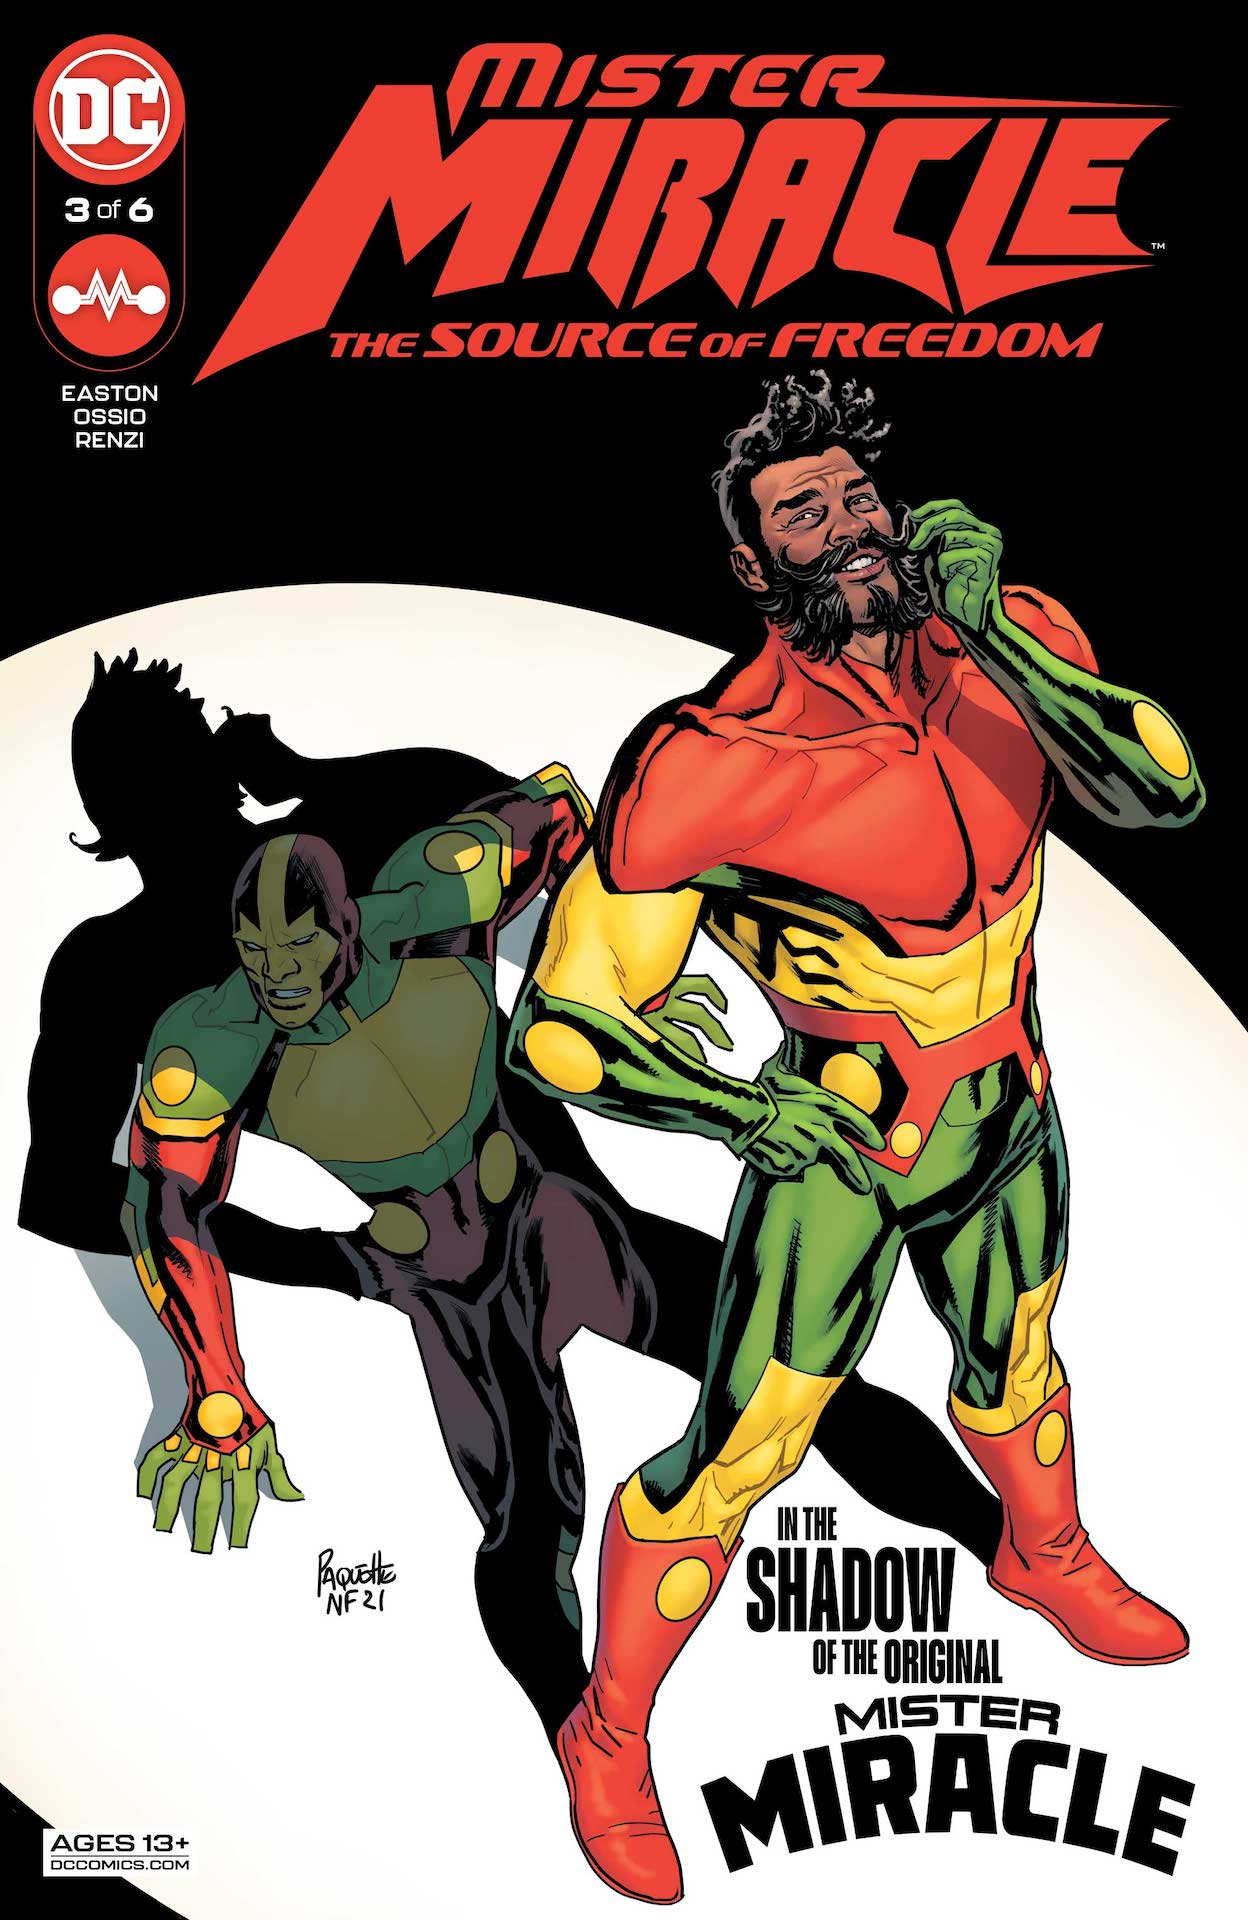 DC Preview: Mister Miracle #3: The Source of Freedom